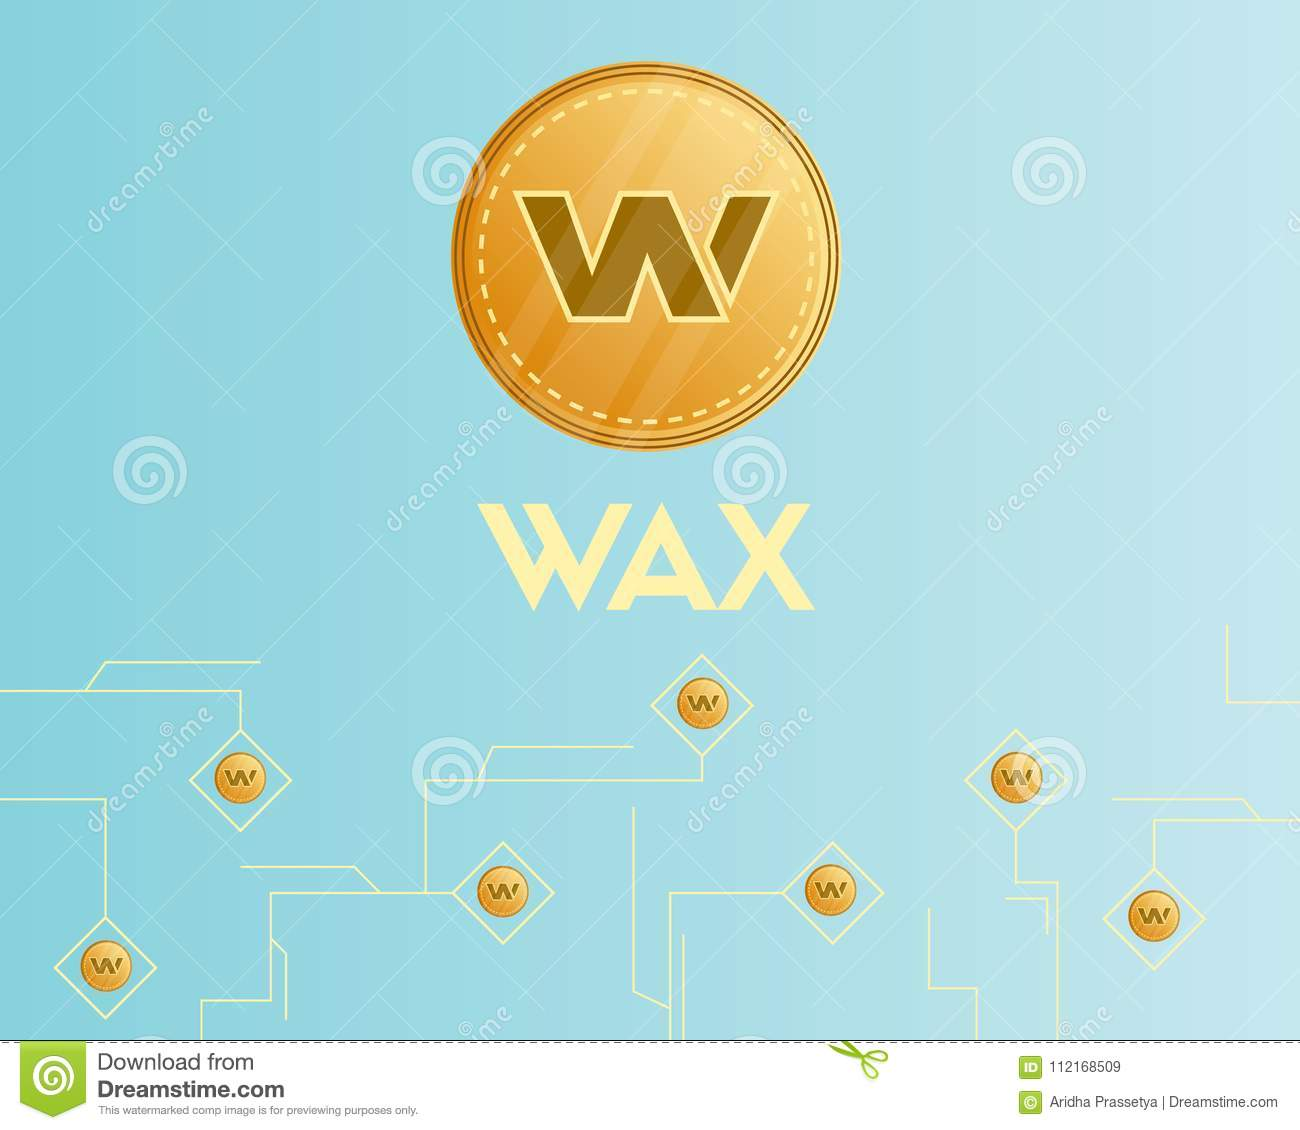 wax cryptocurrency where to buy